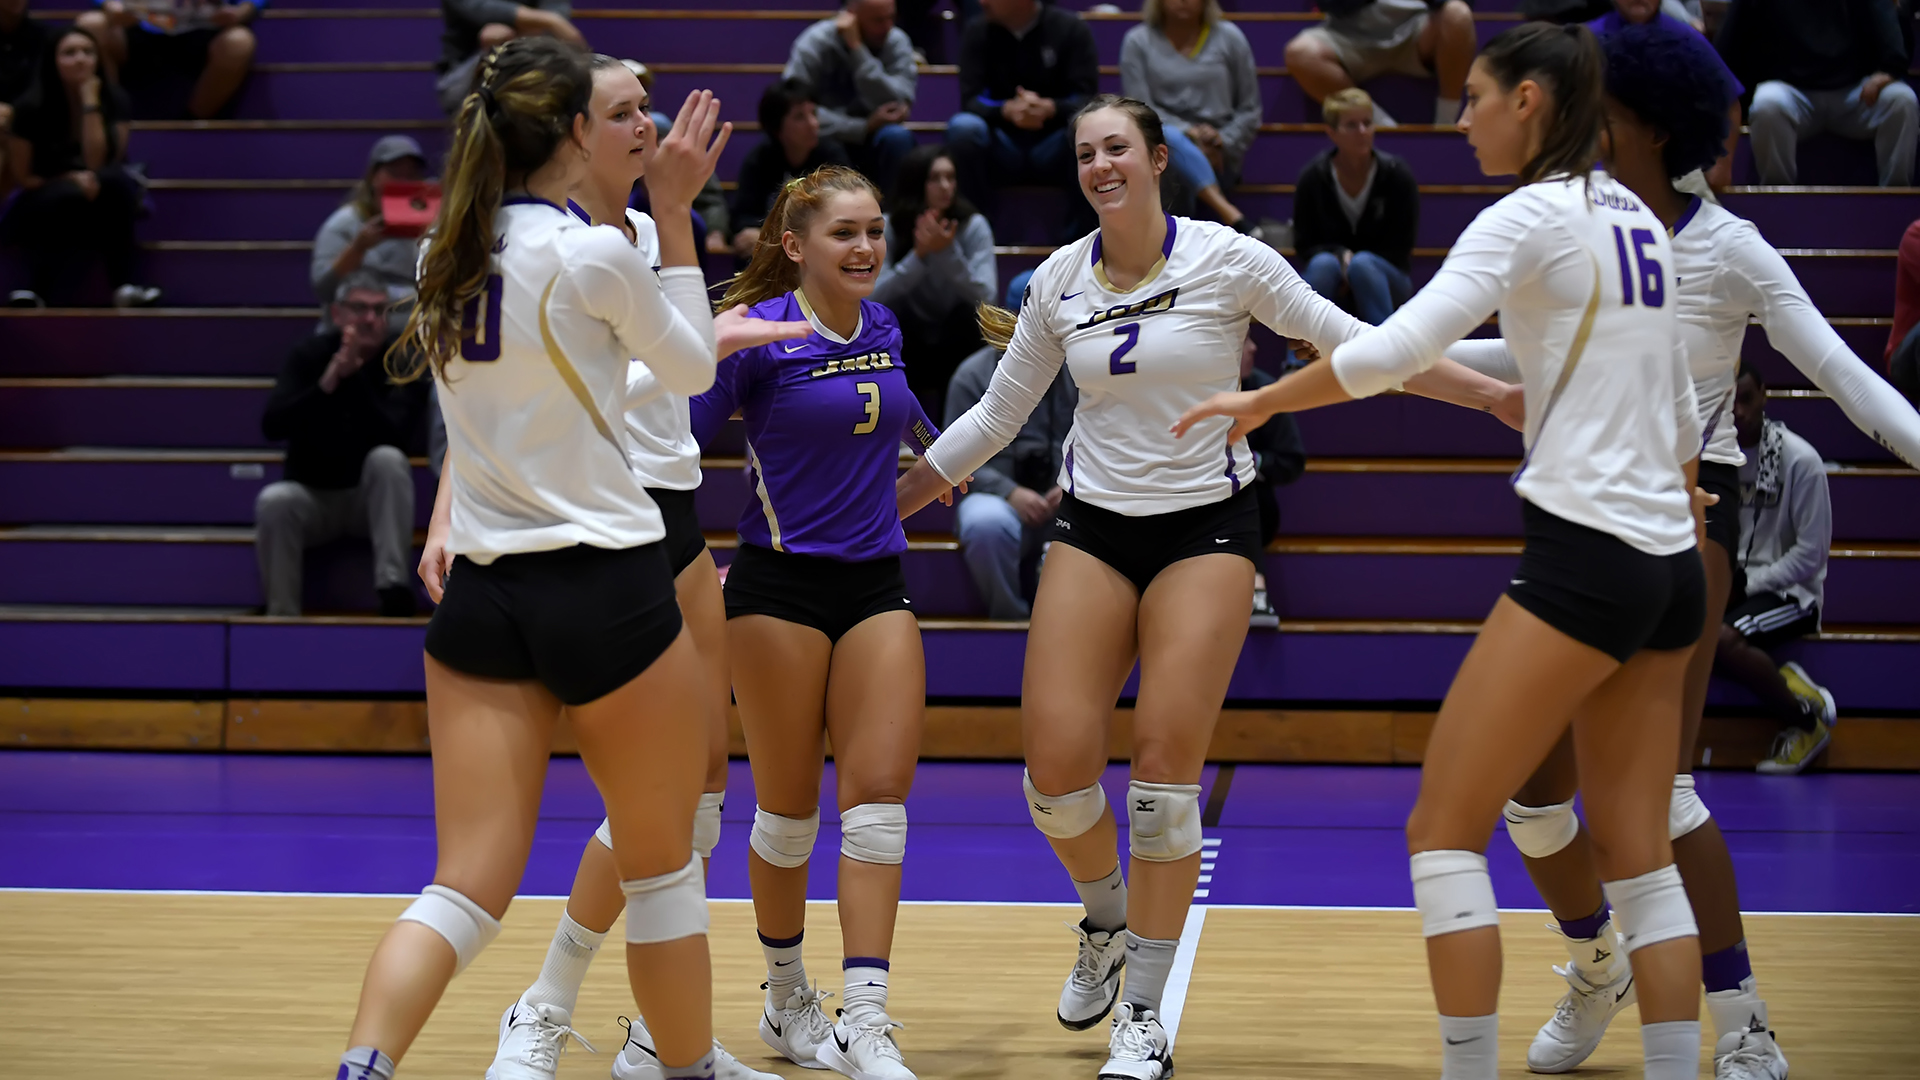 Women's Volleyball: Dukes Earn Sweep over Delaware